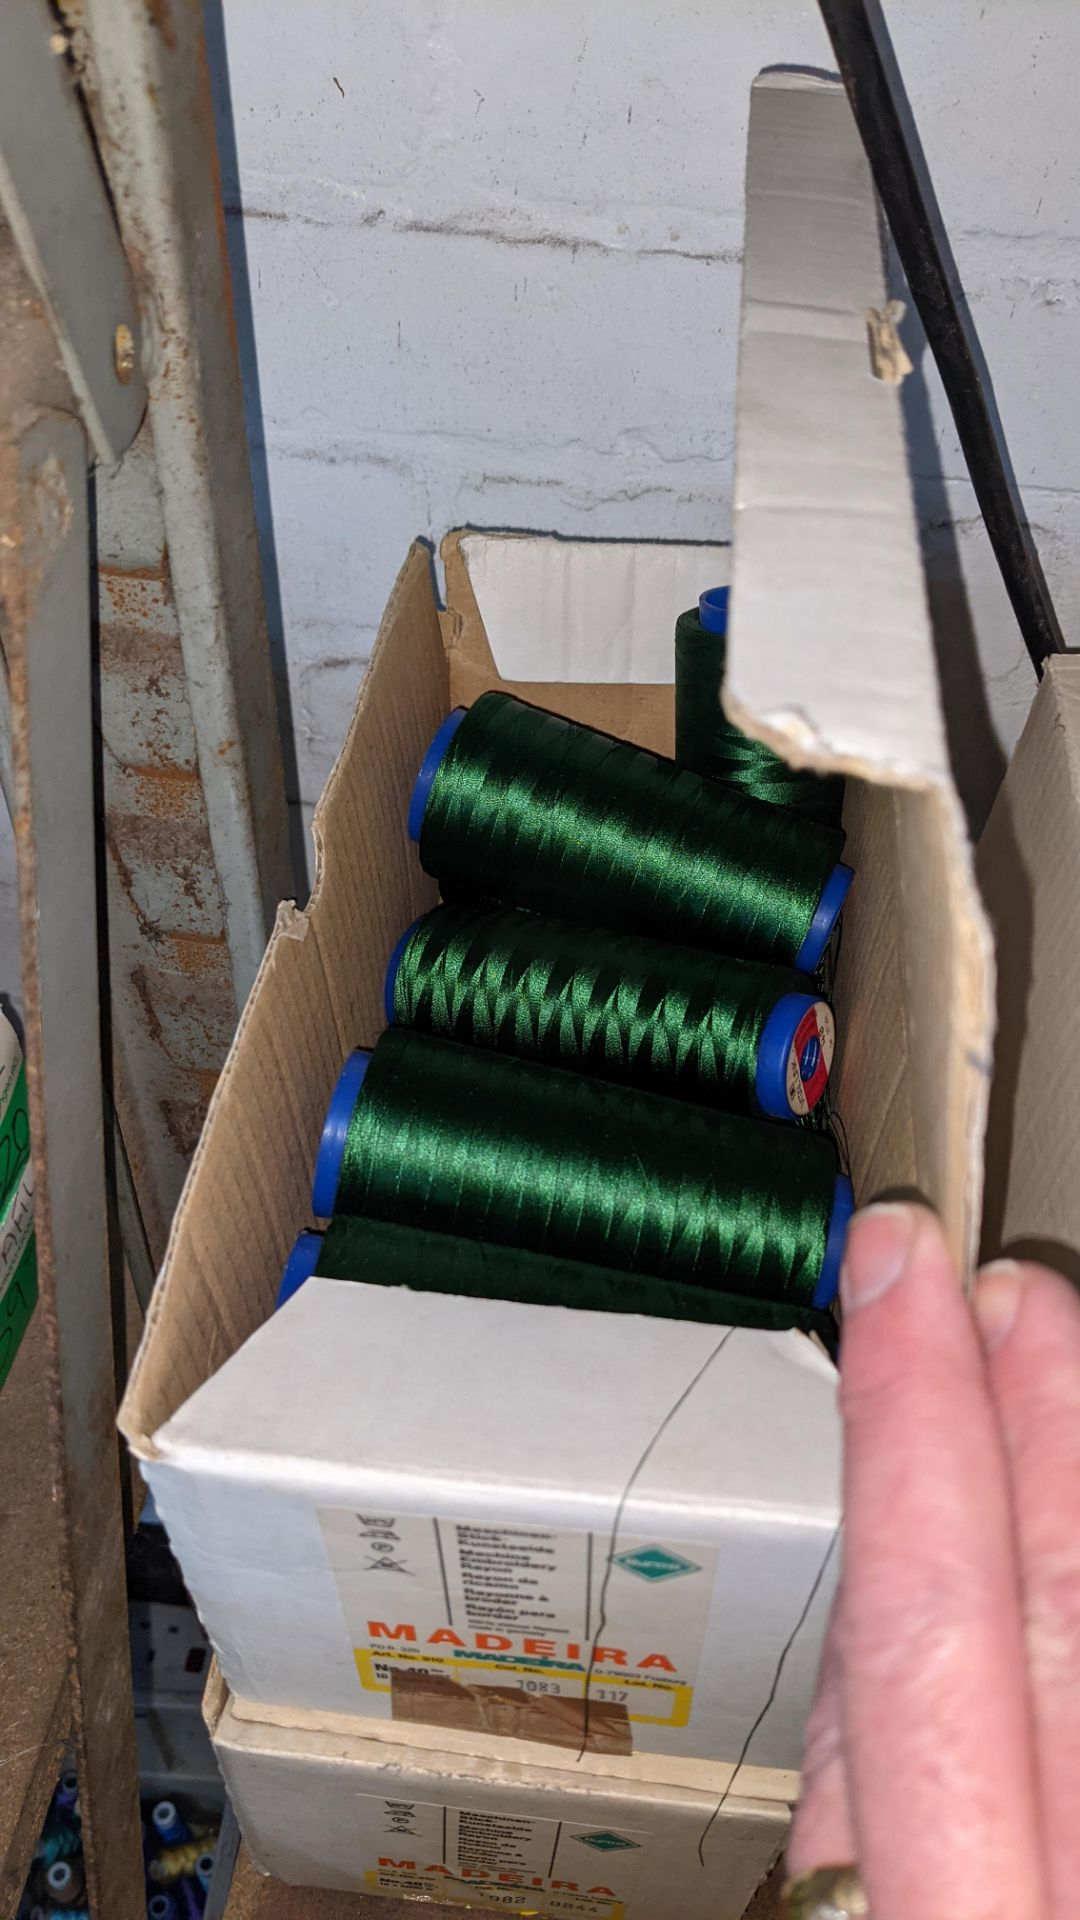 4 boxes of Madeira Burmit No. 40 rayon embroidery thread - Image 6 of 6